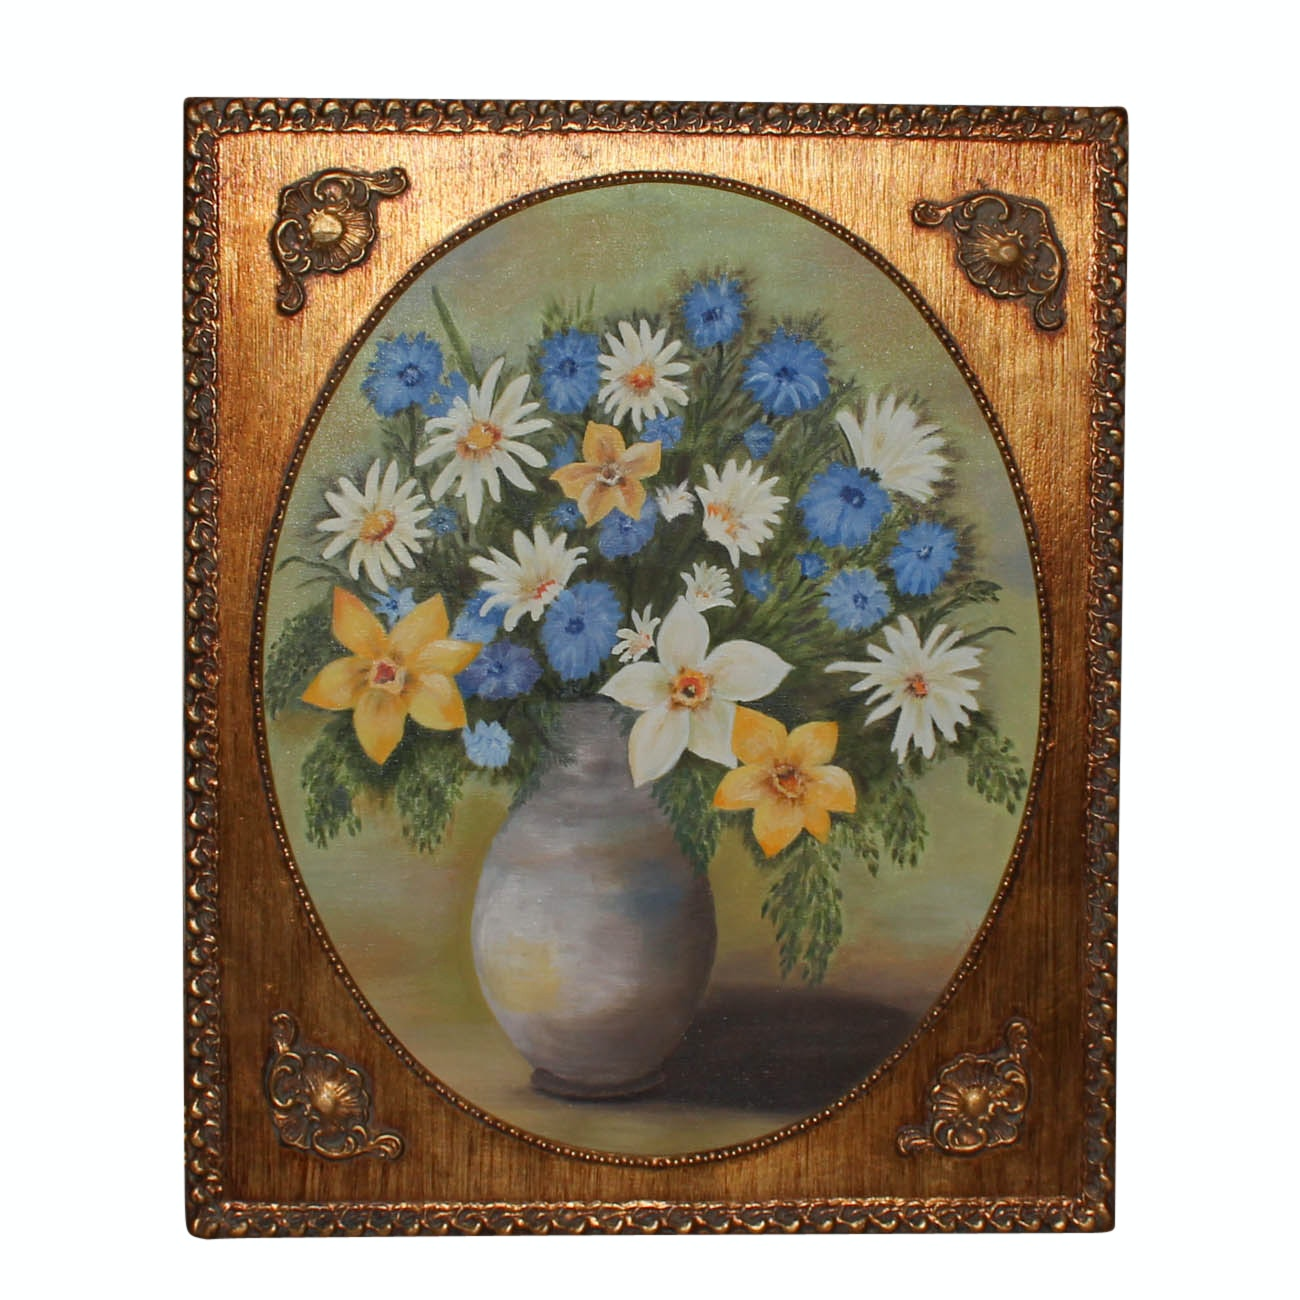 G. McDonough Oil Painting of Vase with Flowers